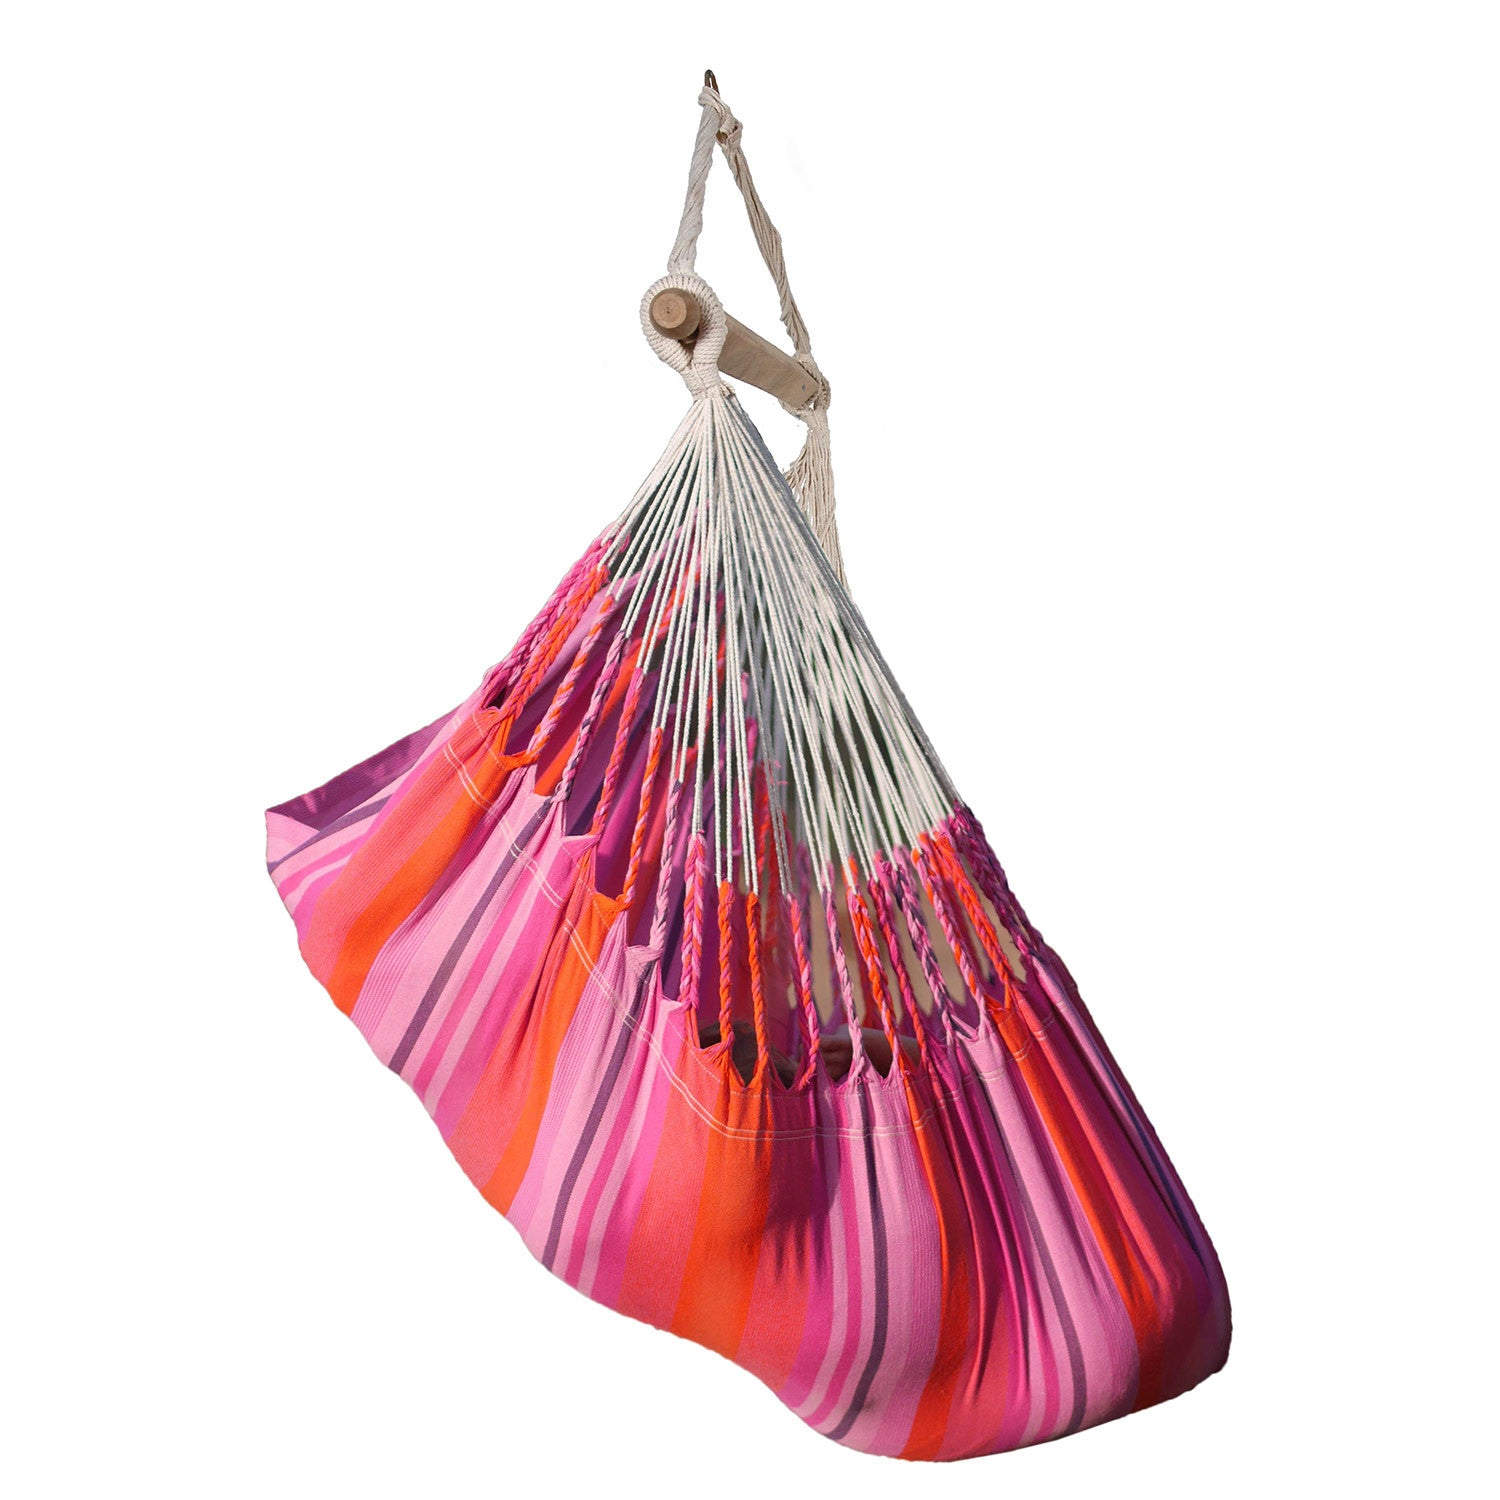 Stylish Swing Chairs The Hanging Swing and Hammock Chair Specialists